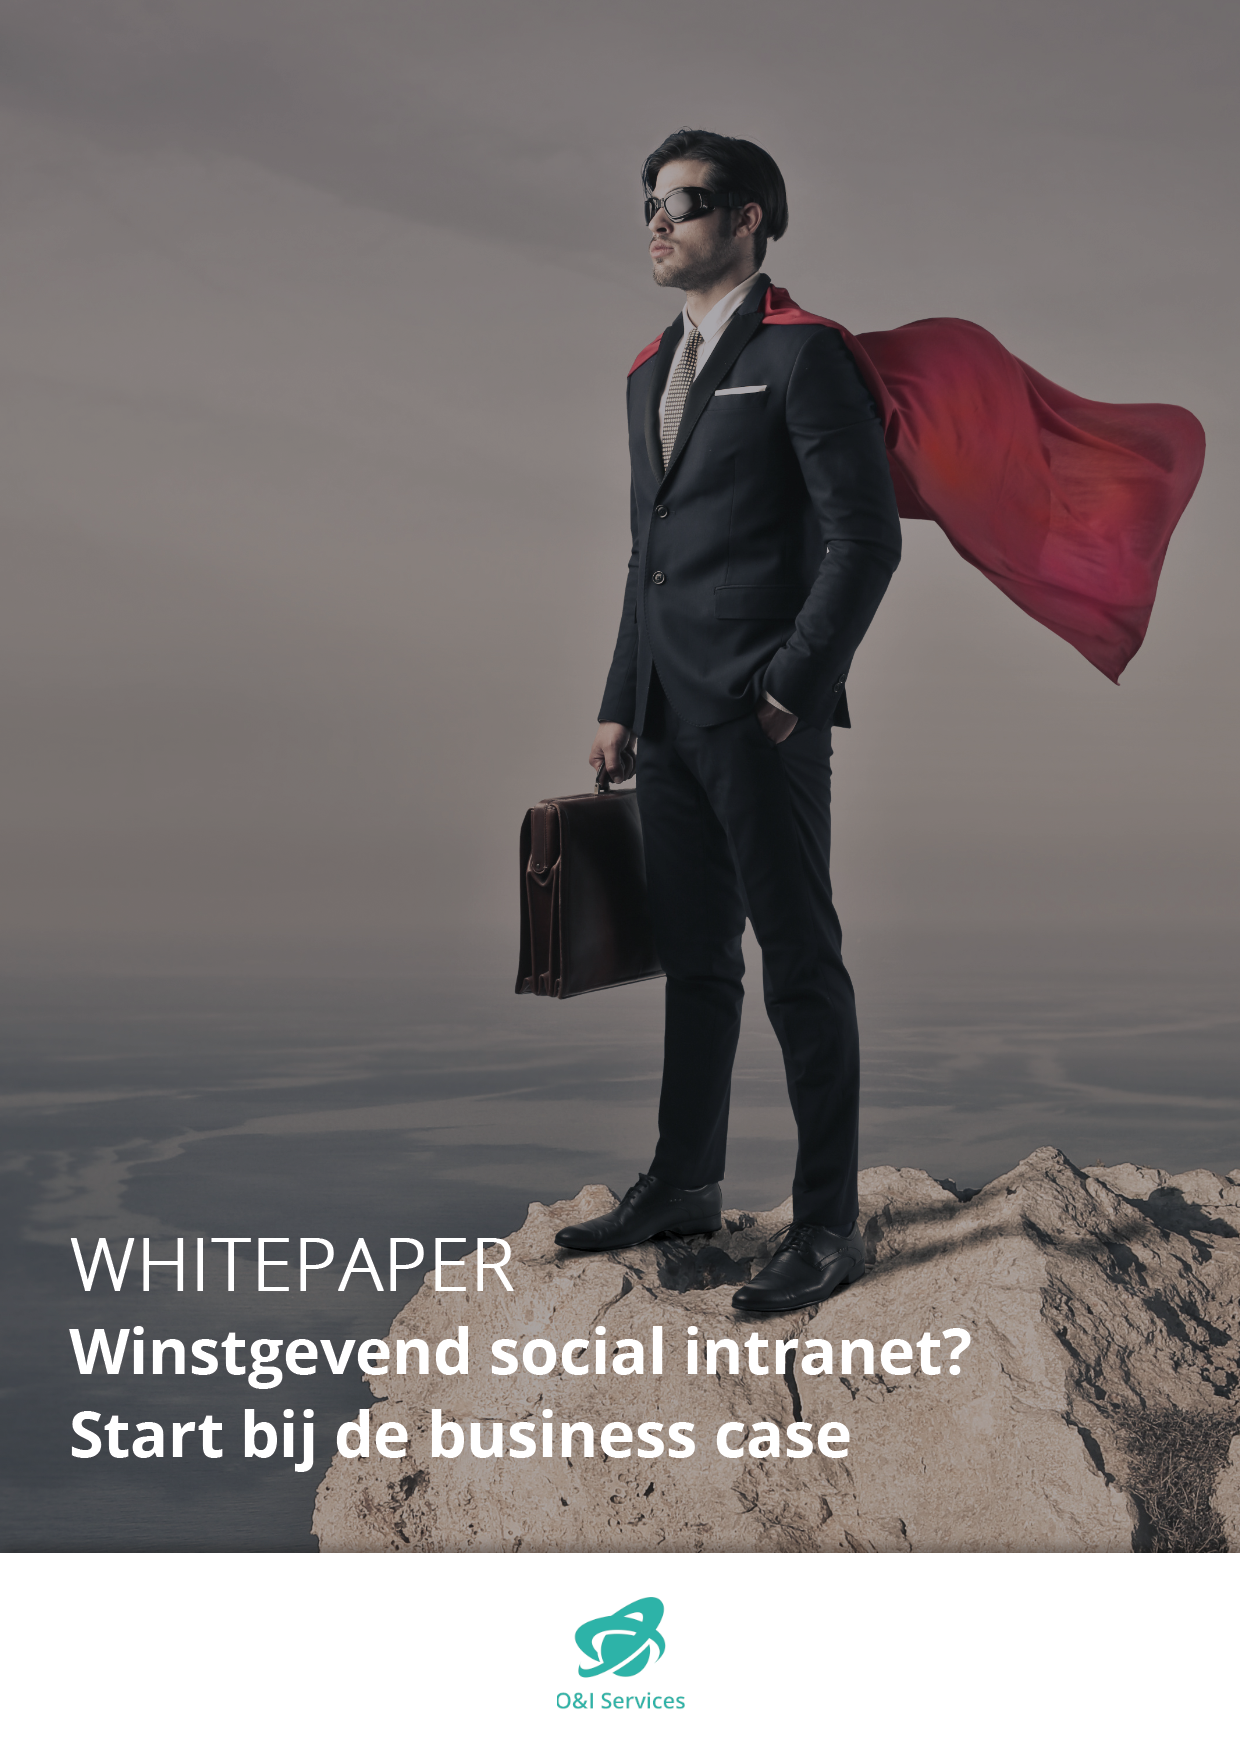 Winstgevend social intranet? Start bij de business case! - O&I Services